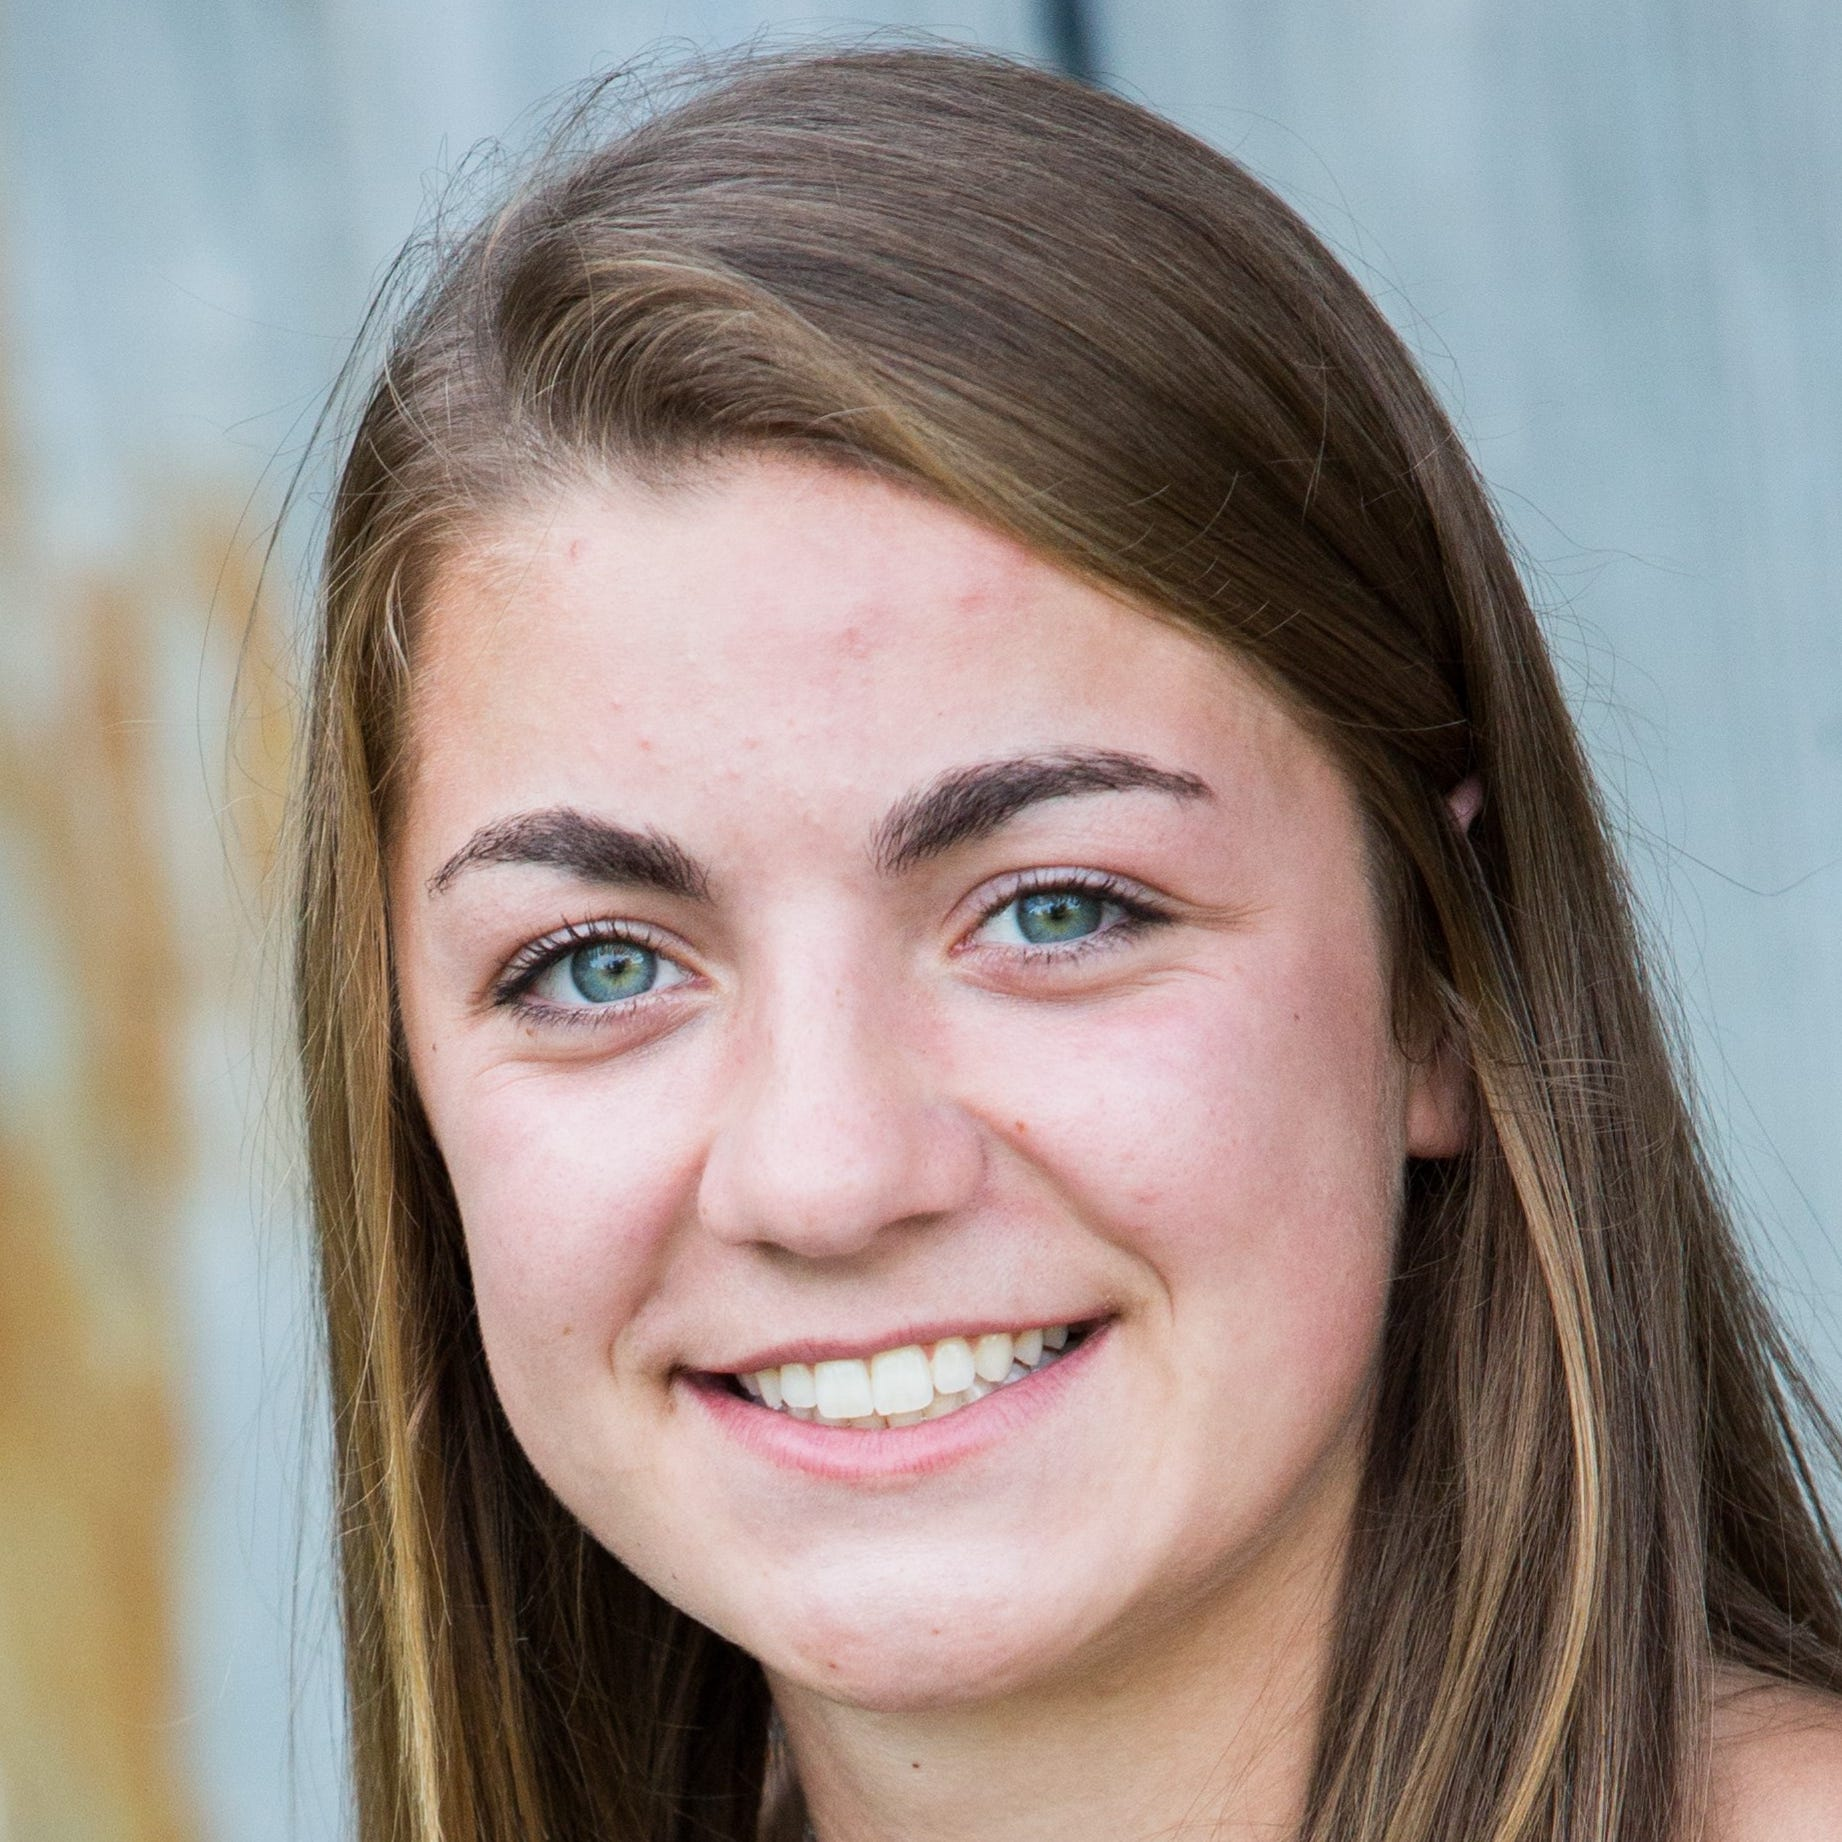 Athlete of the Week: Cathedral senior Megan Voit earns readers' votes, again